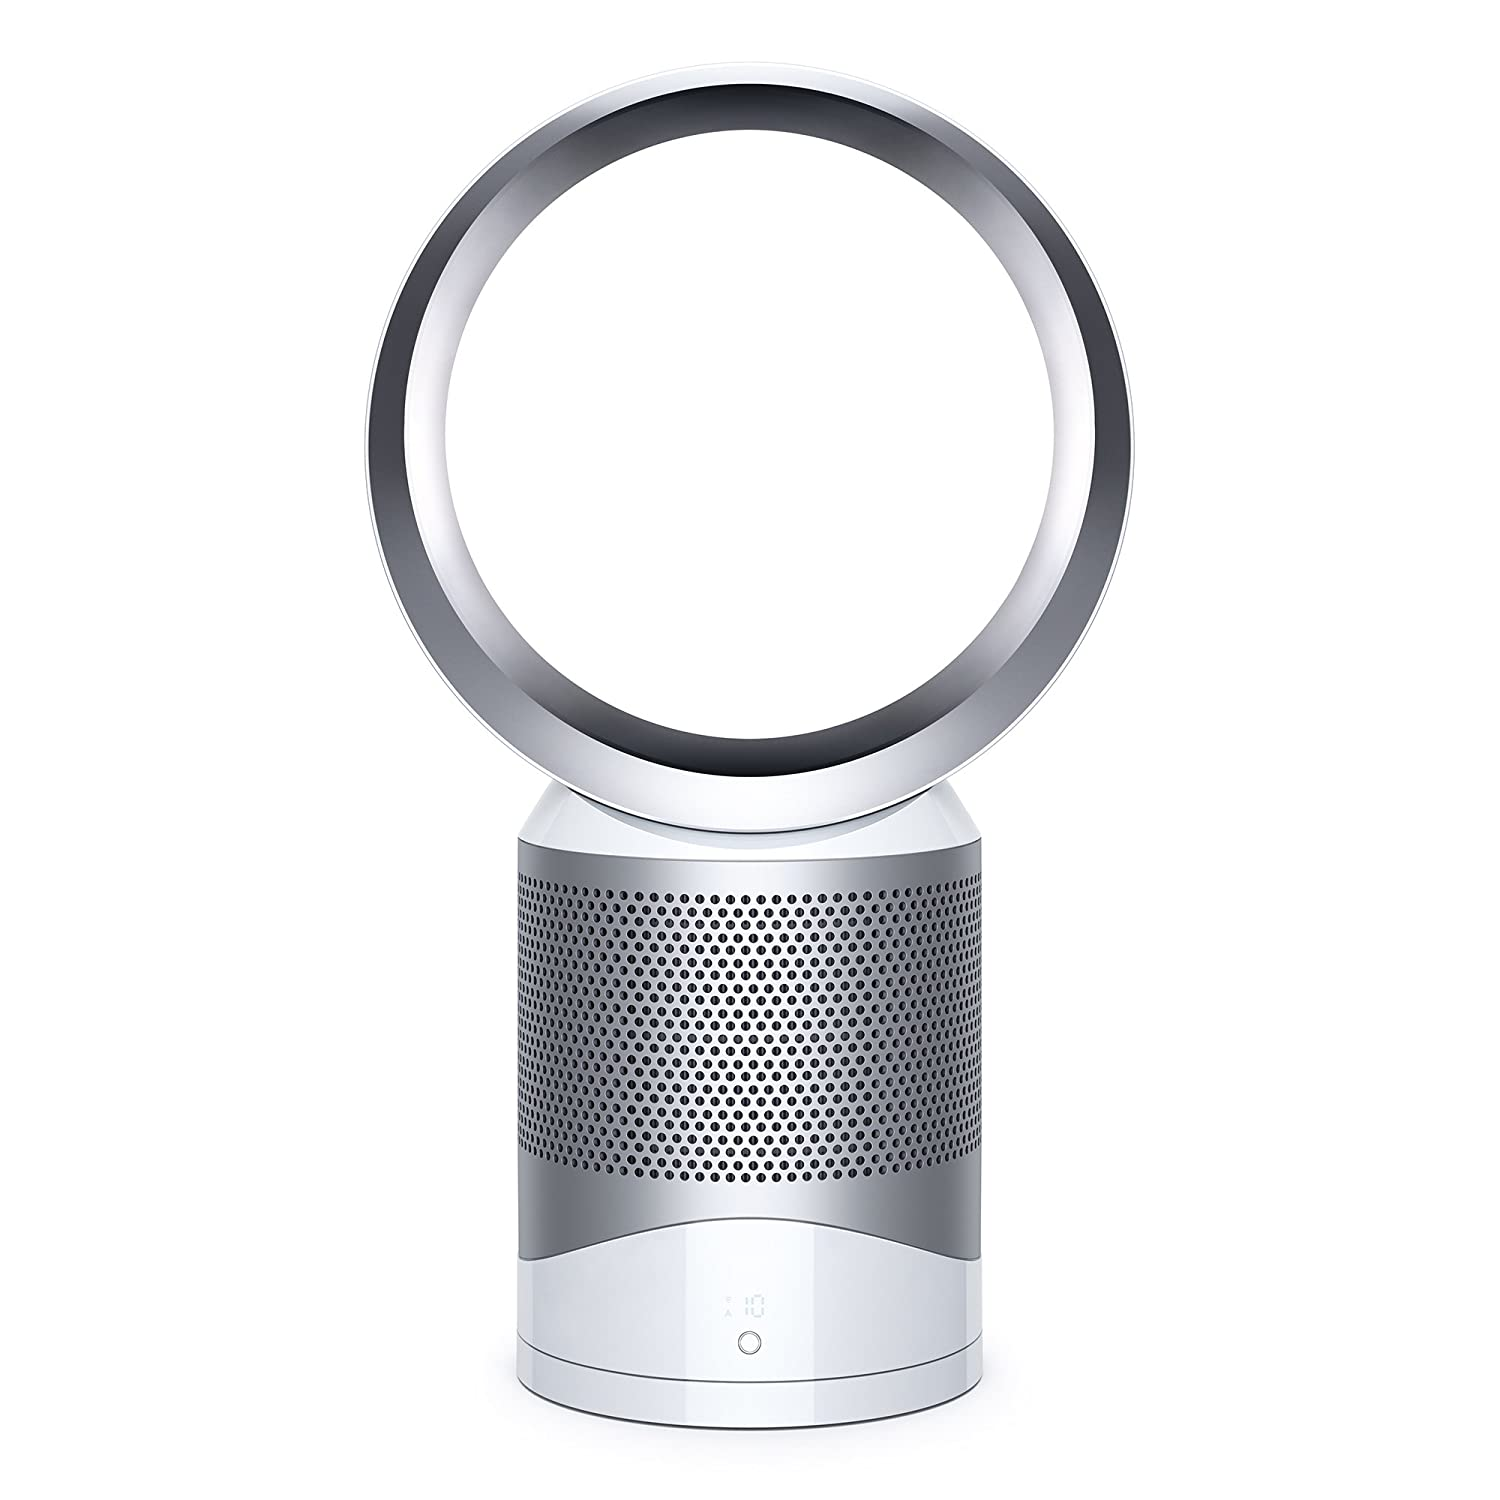 Dyson Pure Cool Link Desk Air Purifier Black Friday Deals 2019